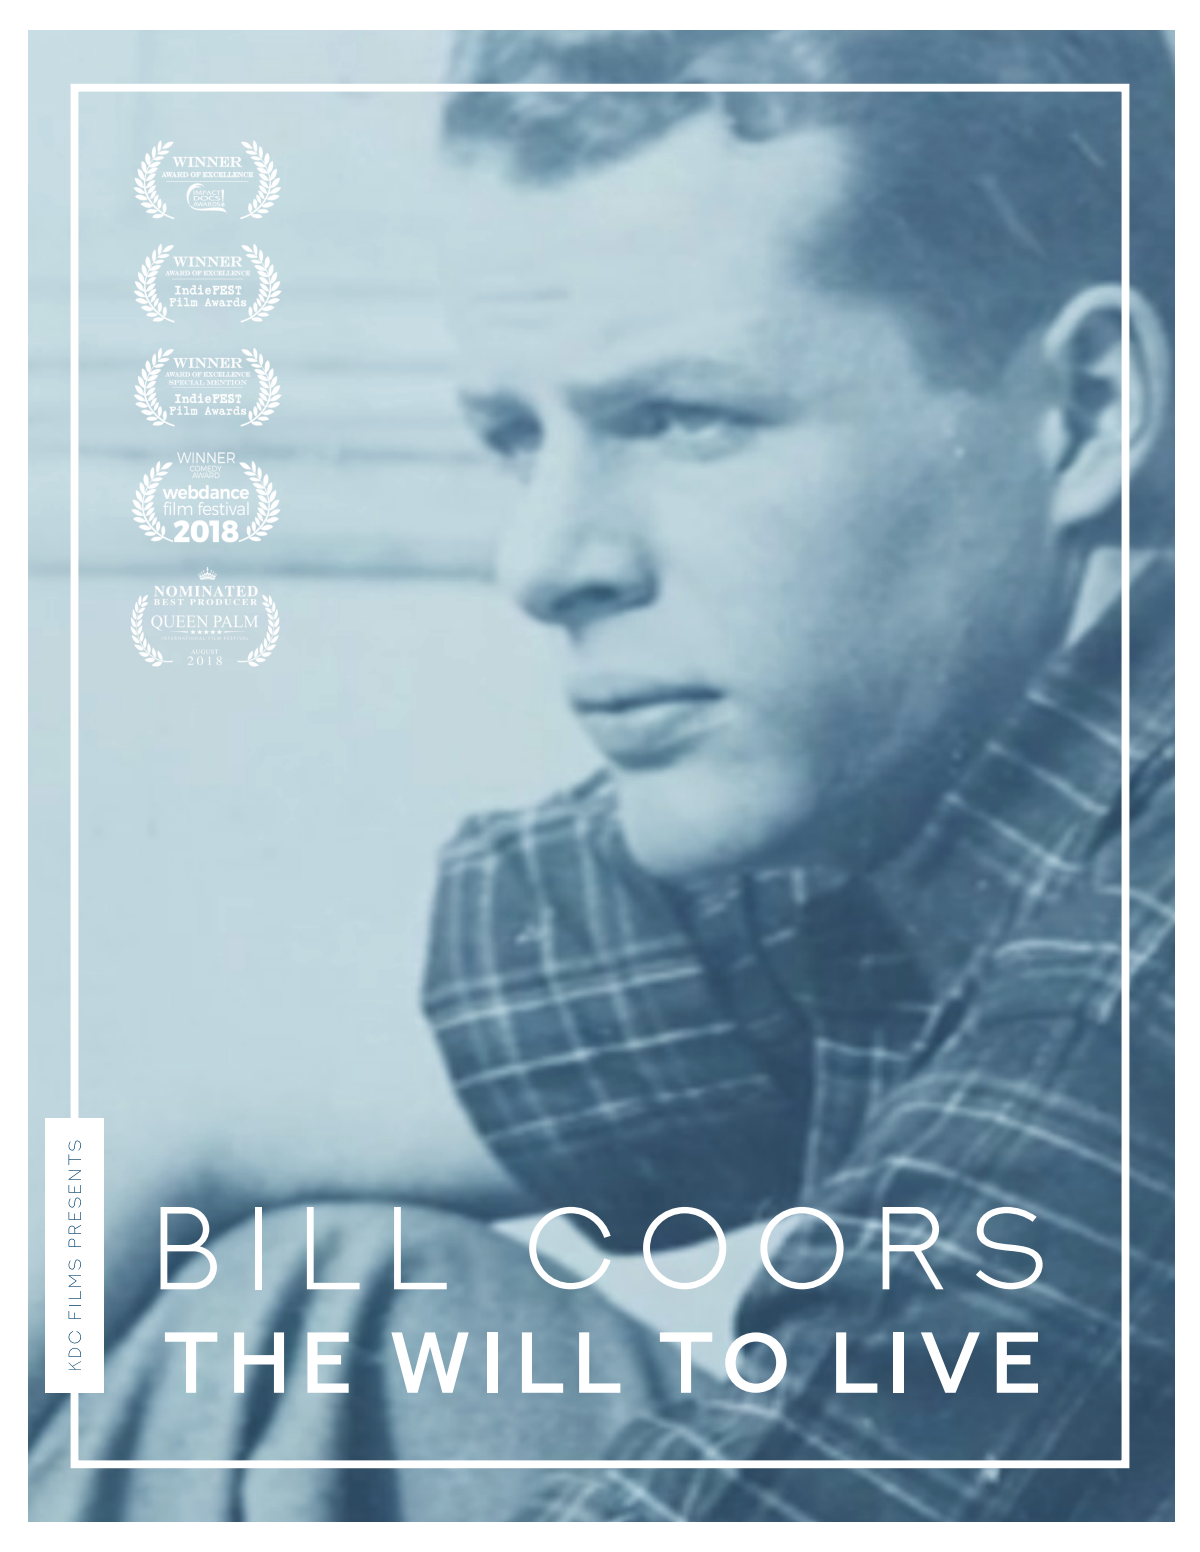 Bill Coors: The Will To Live Press Kit